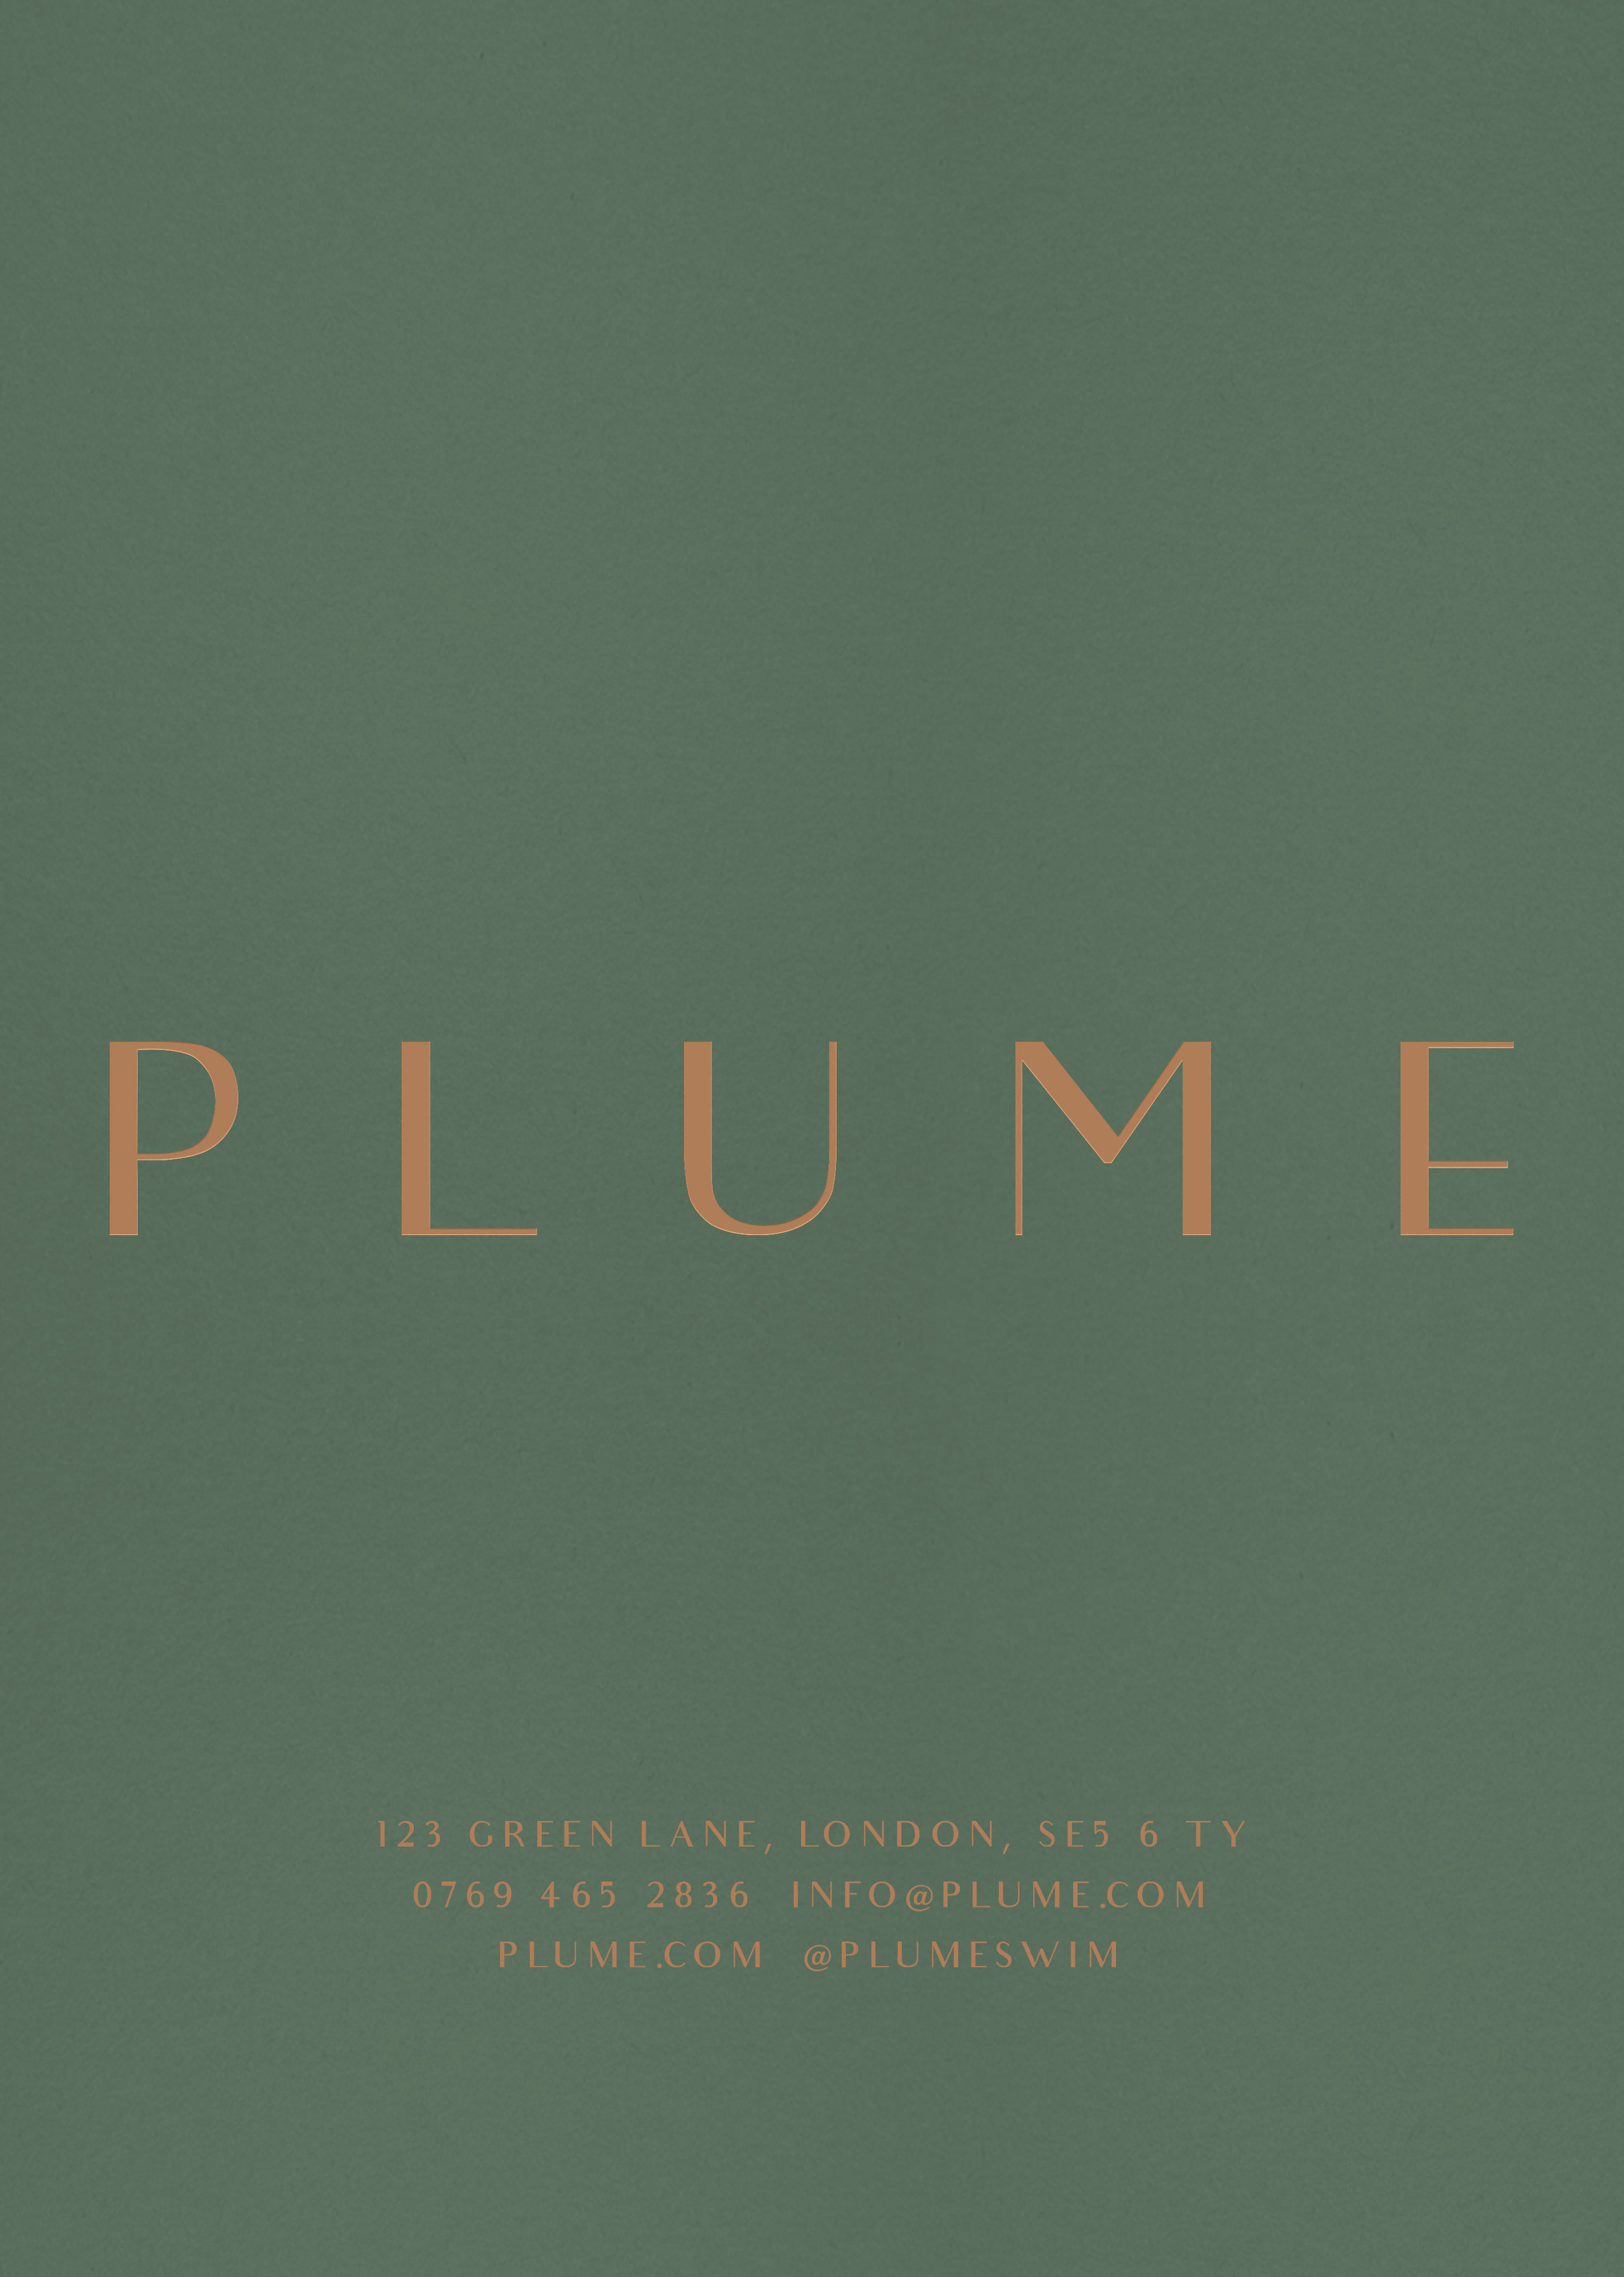 plume-fashion-logo-design-gold-loolaadesigns.jpg